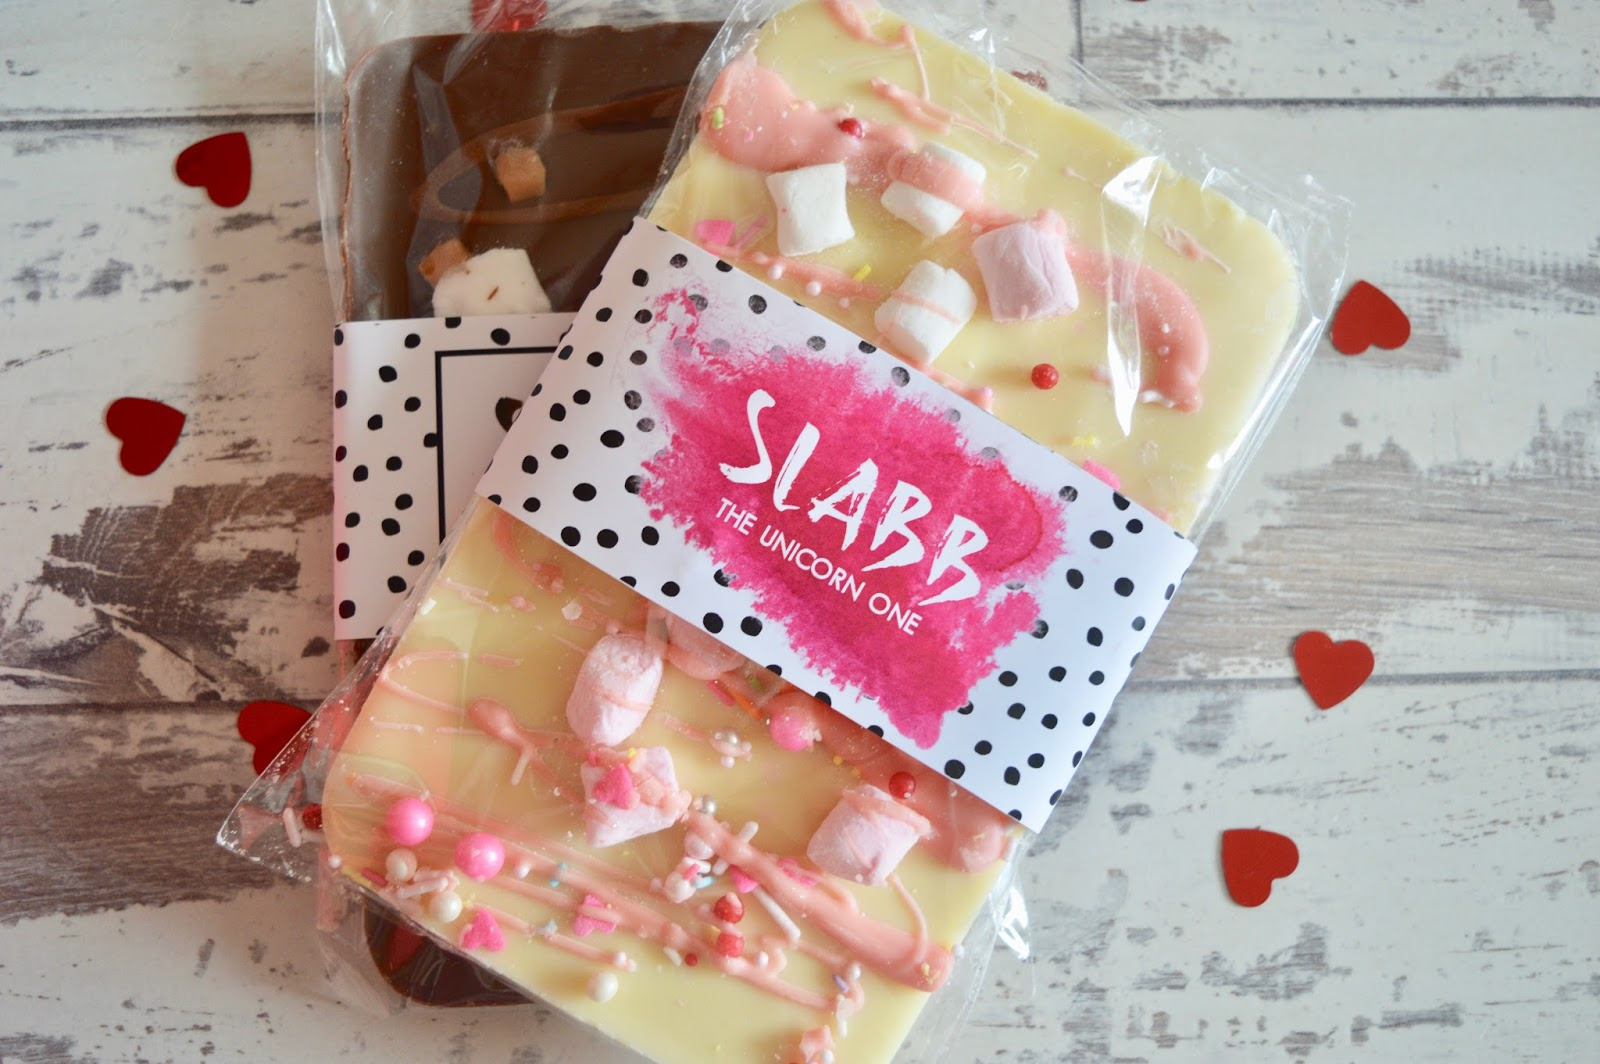 the slabb fully loaded chocolate review